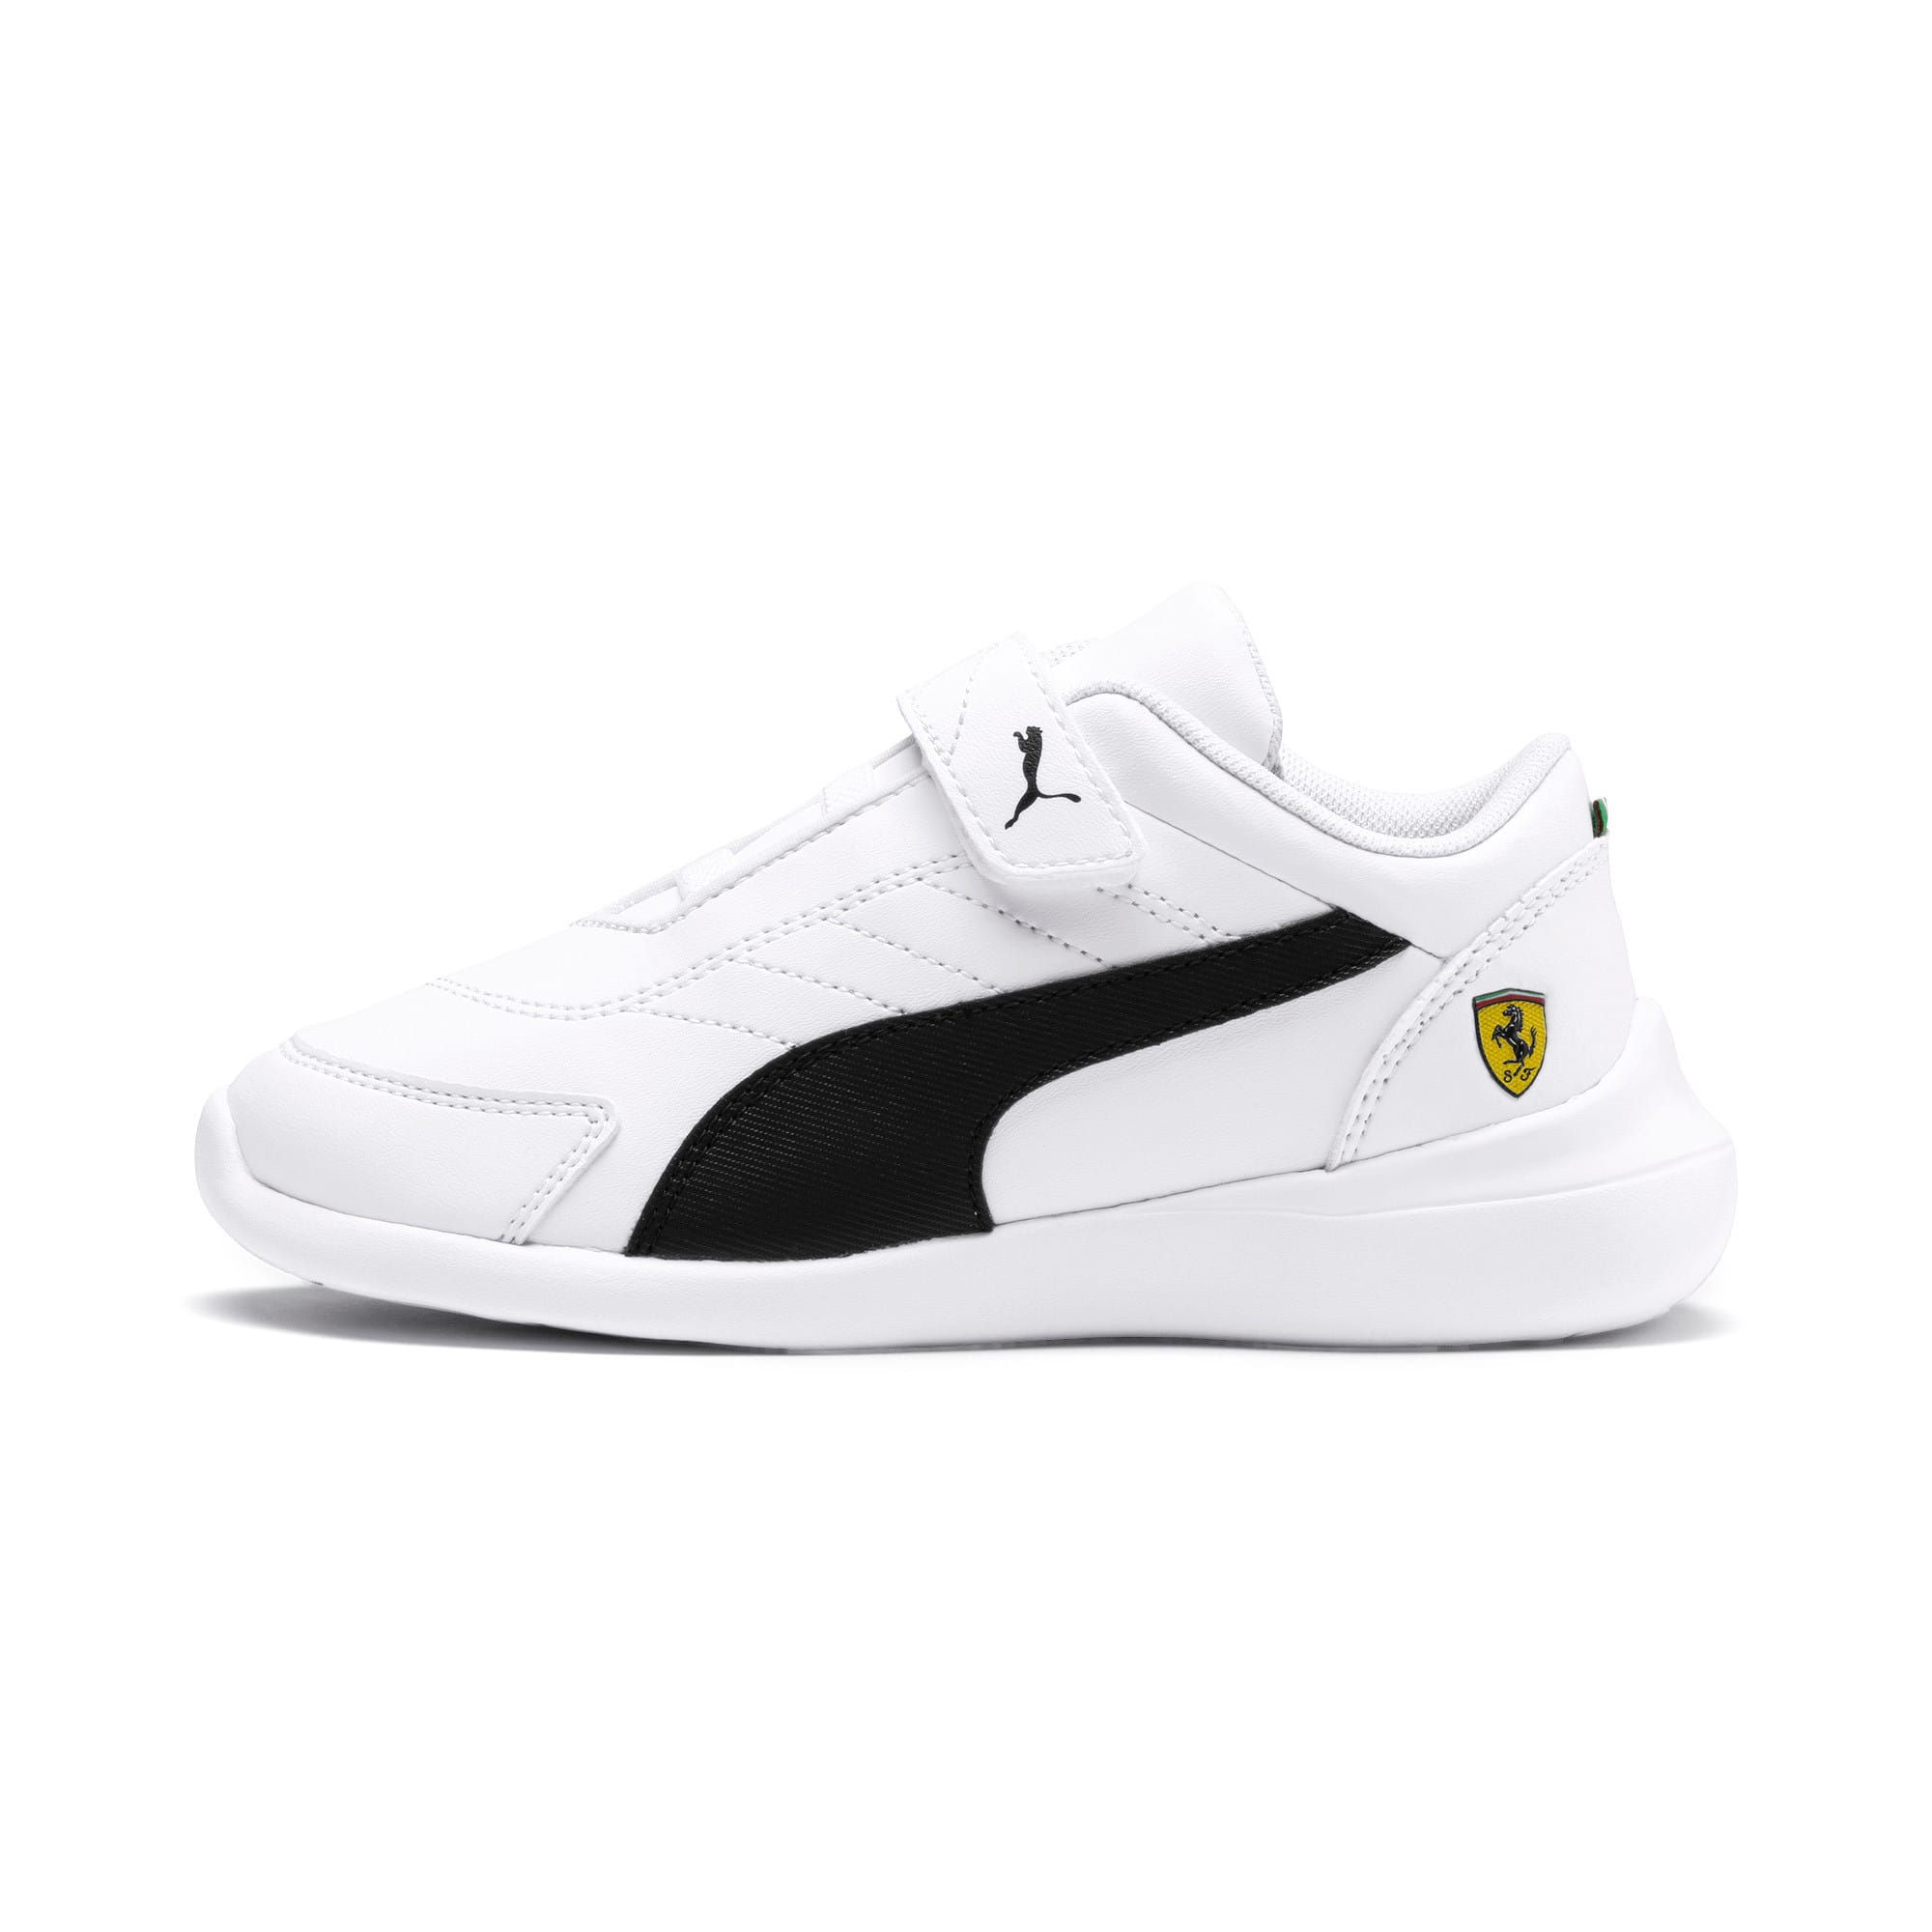 Thumbnail 1 of Ferrari Kart Cat III Kids' Trainers, White-Black-Rosso Corsa, medium